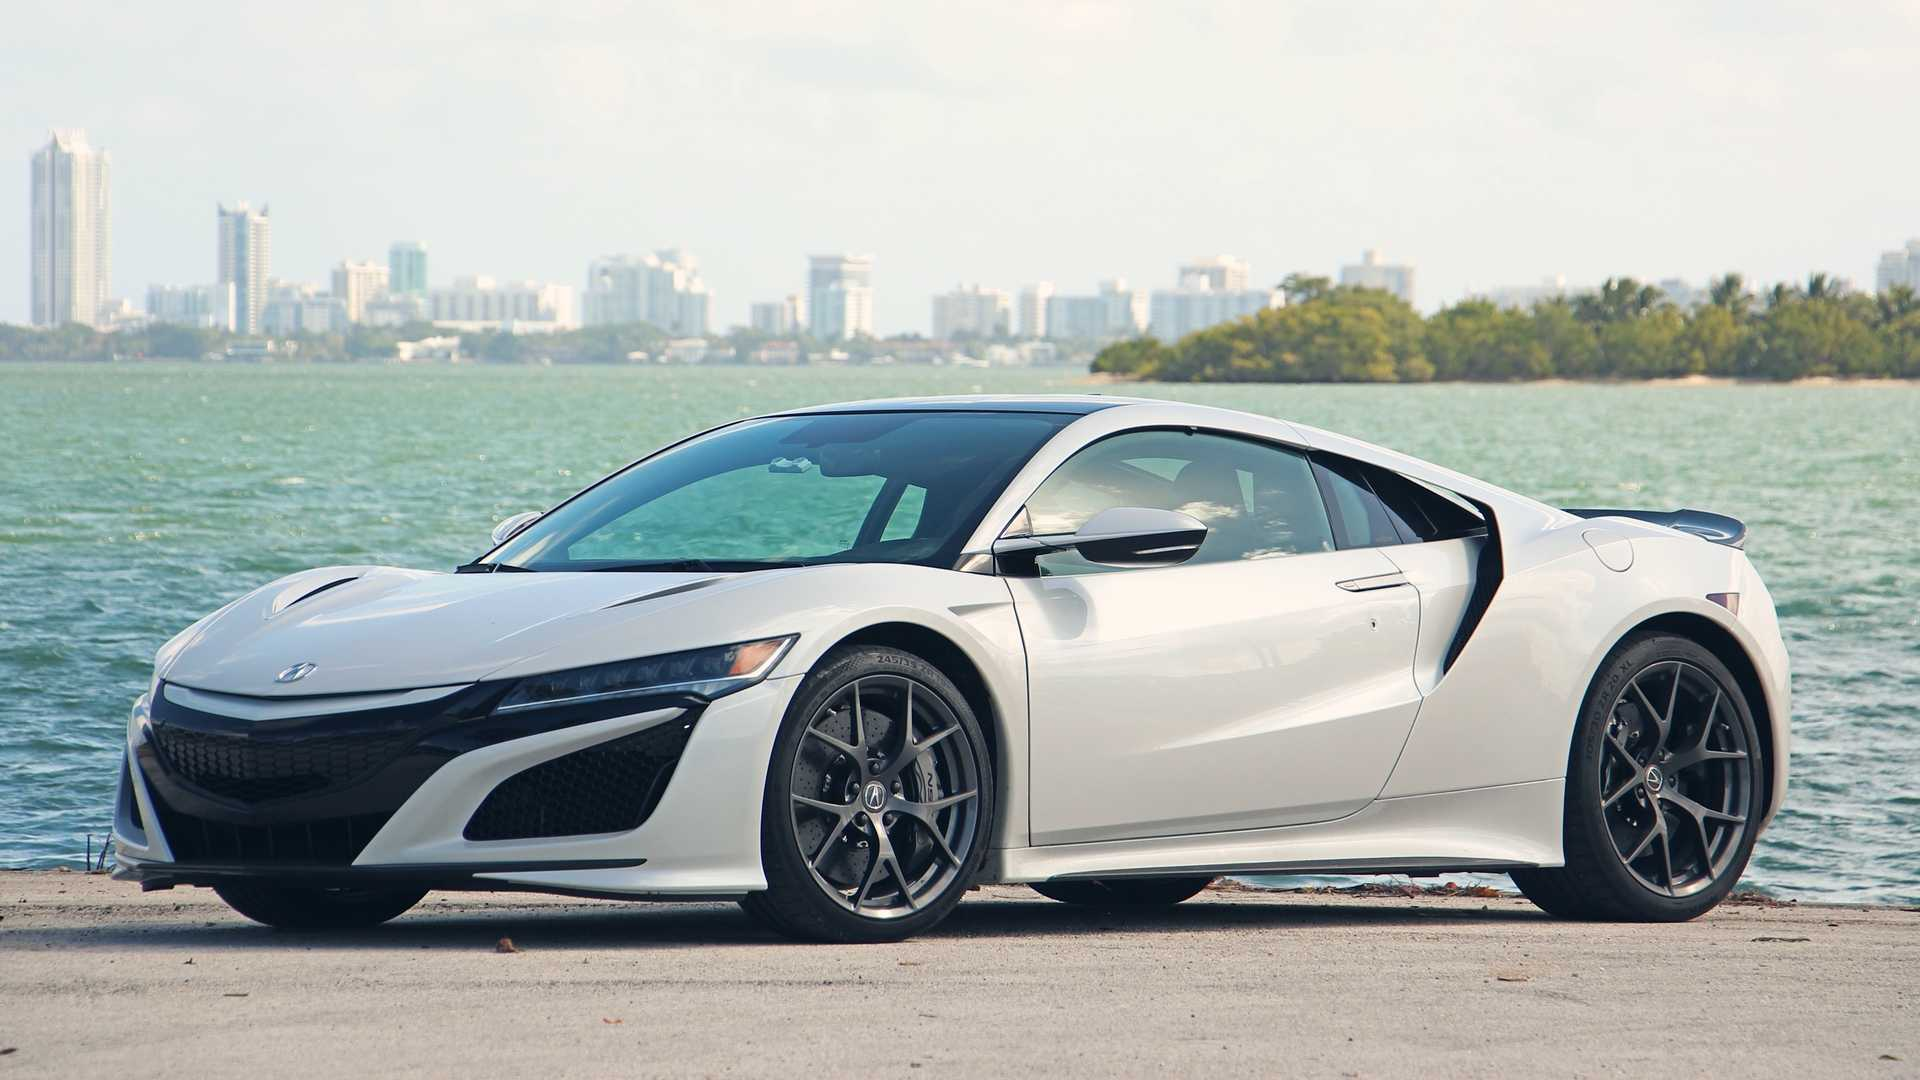 75 The Best 2019 Acura NSX Release